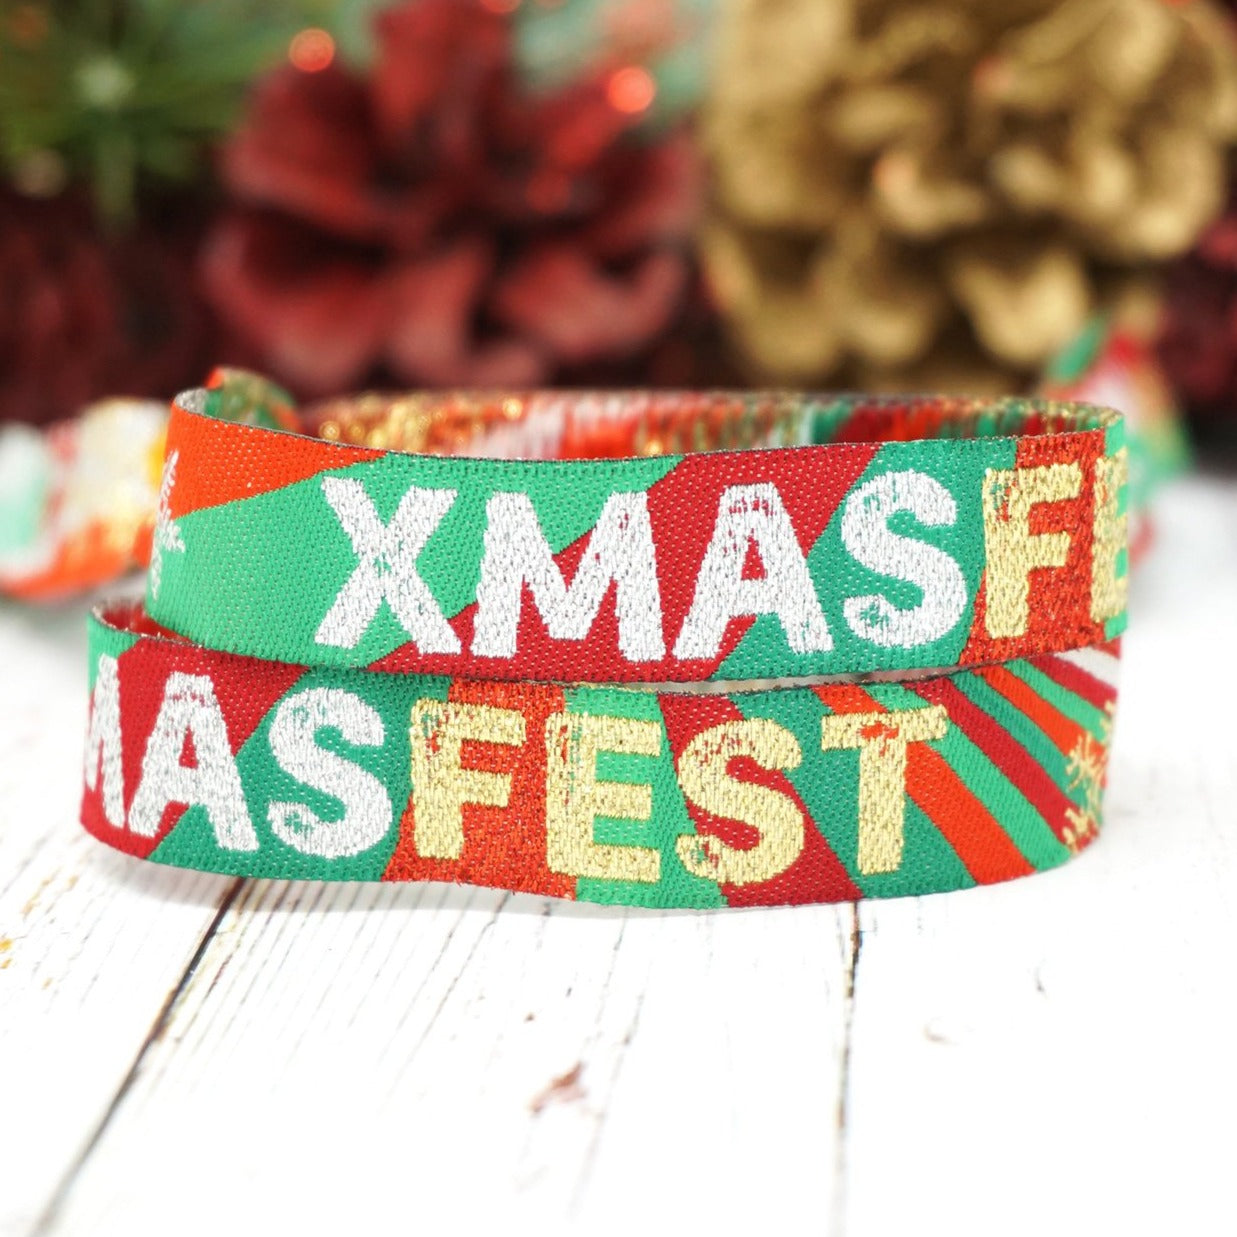 XMASFEST christmas party festival wristbands homefest